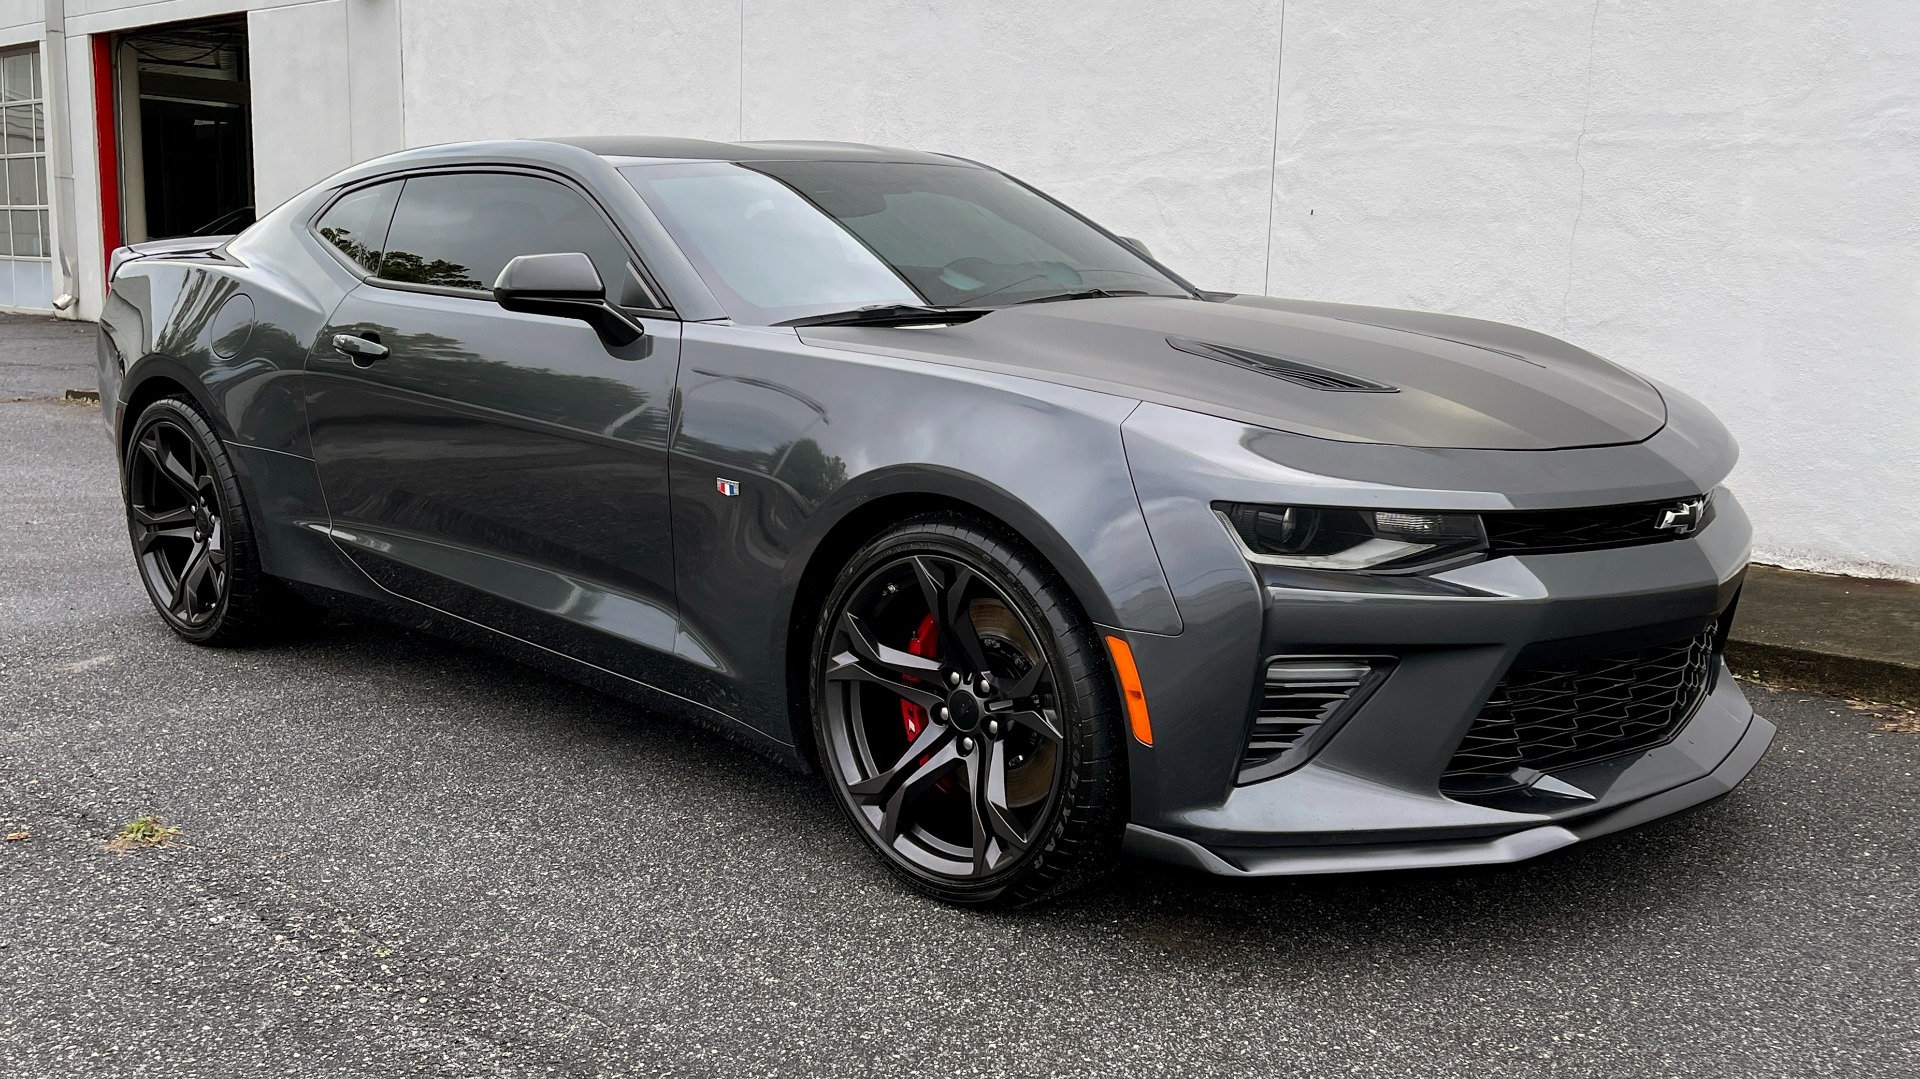 Used 2018 Chevrolet CAMARO 2SS / 6.2L V8 / MANUAL / 1LE TRACK PKG / NAV / BOSE / REARVIEW for sale $39,795 at Formula Imports in Charlotte NC 28227 6